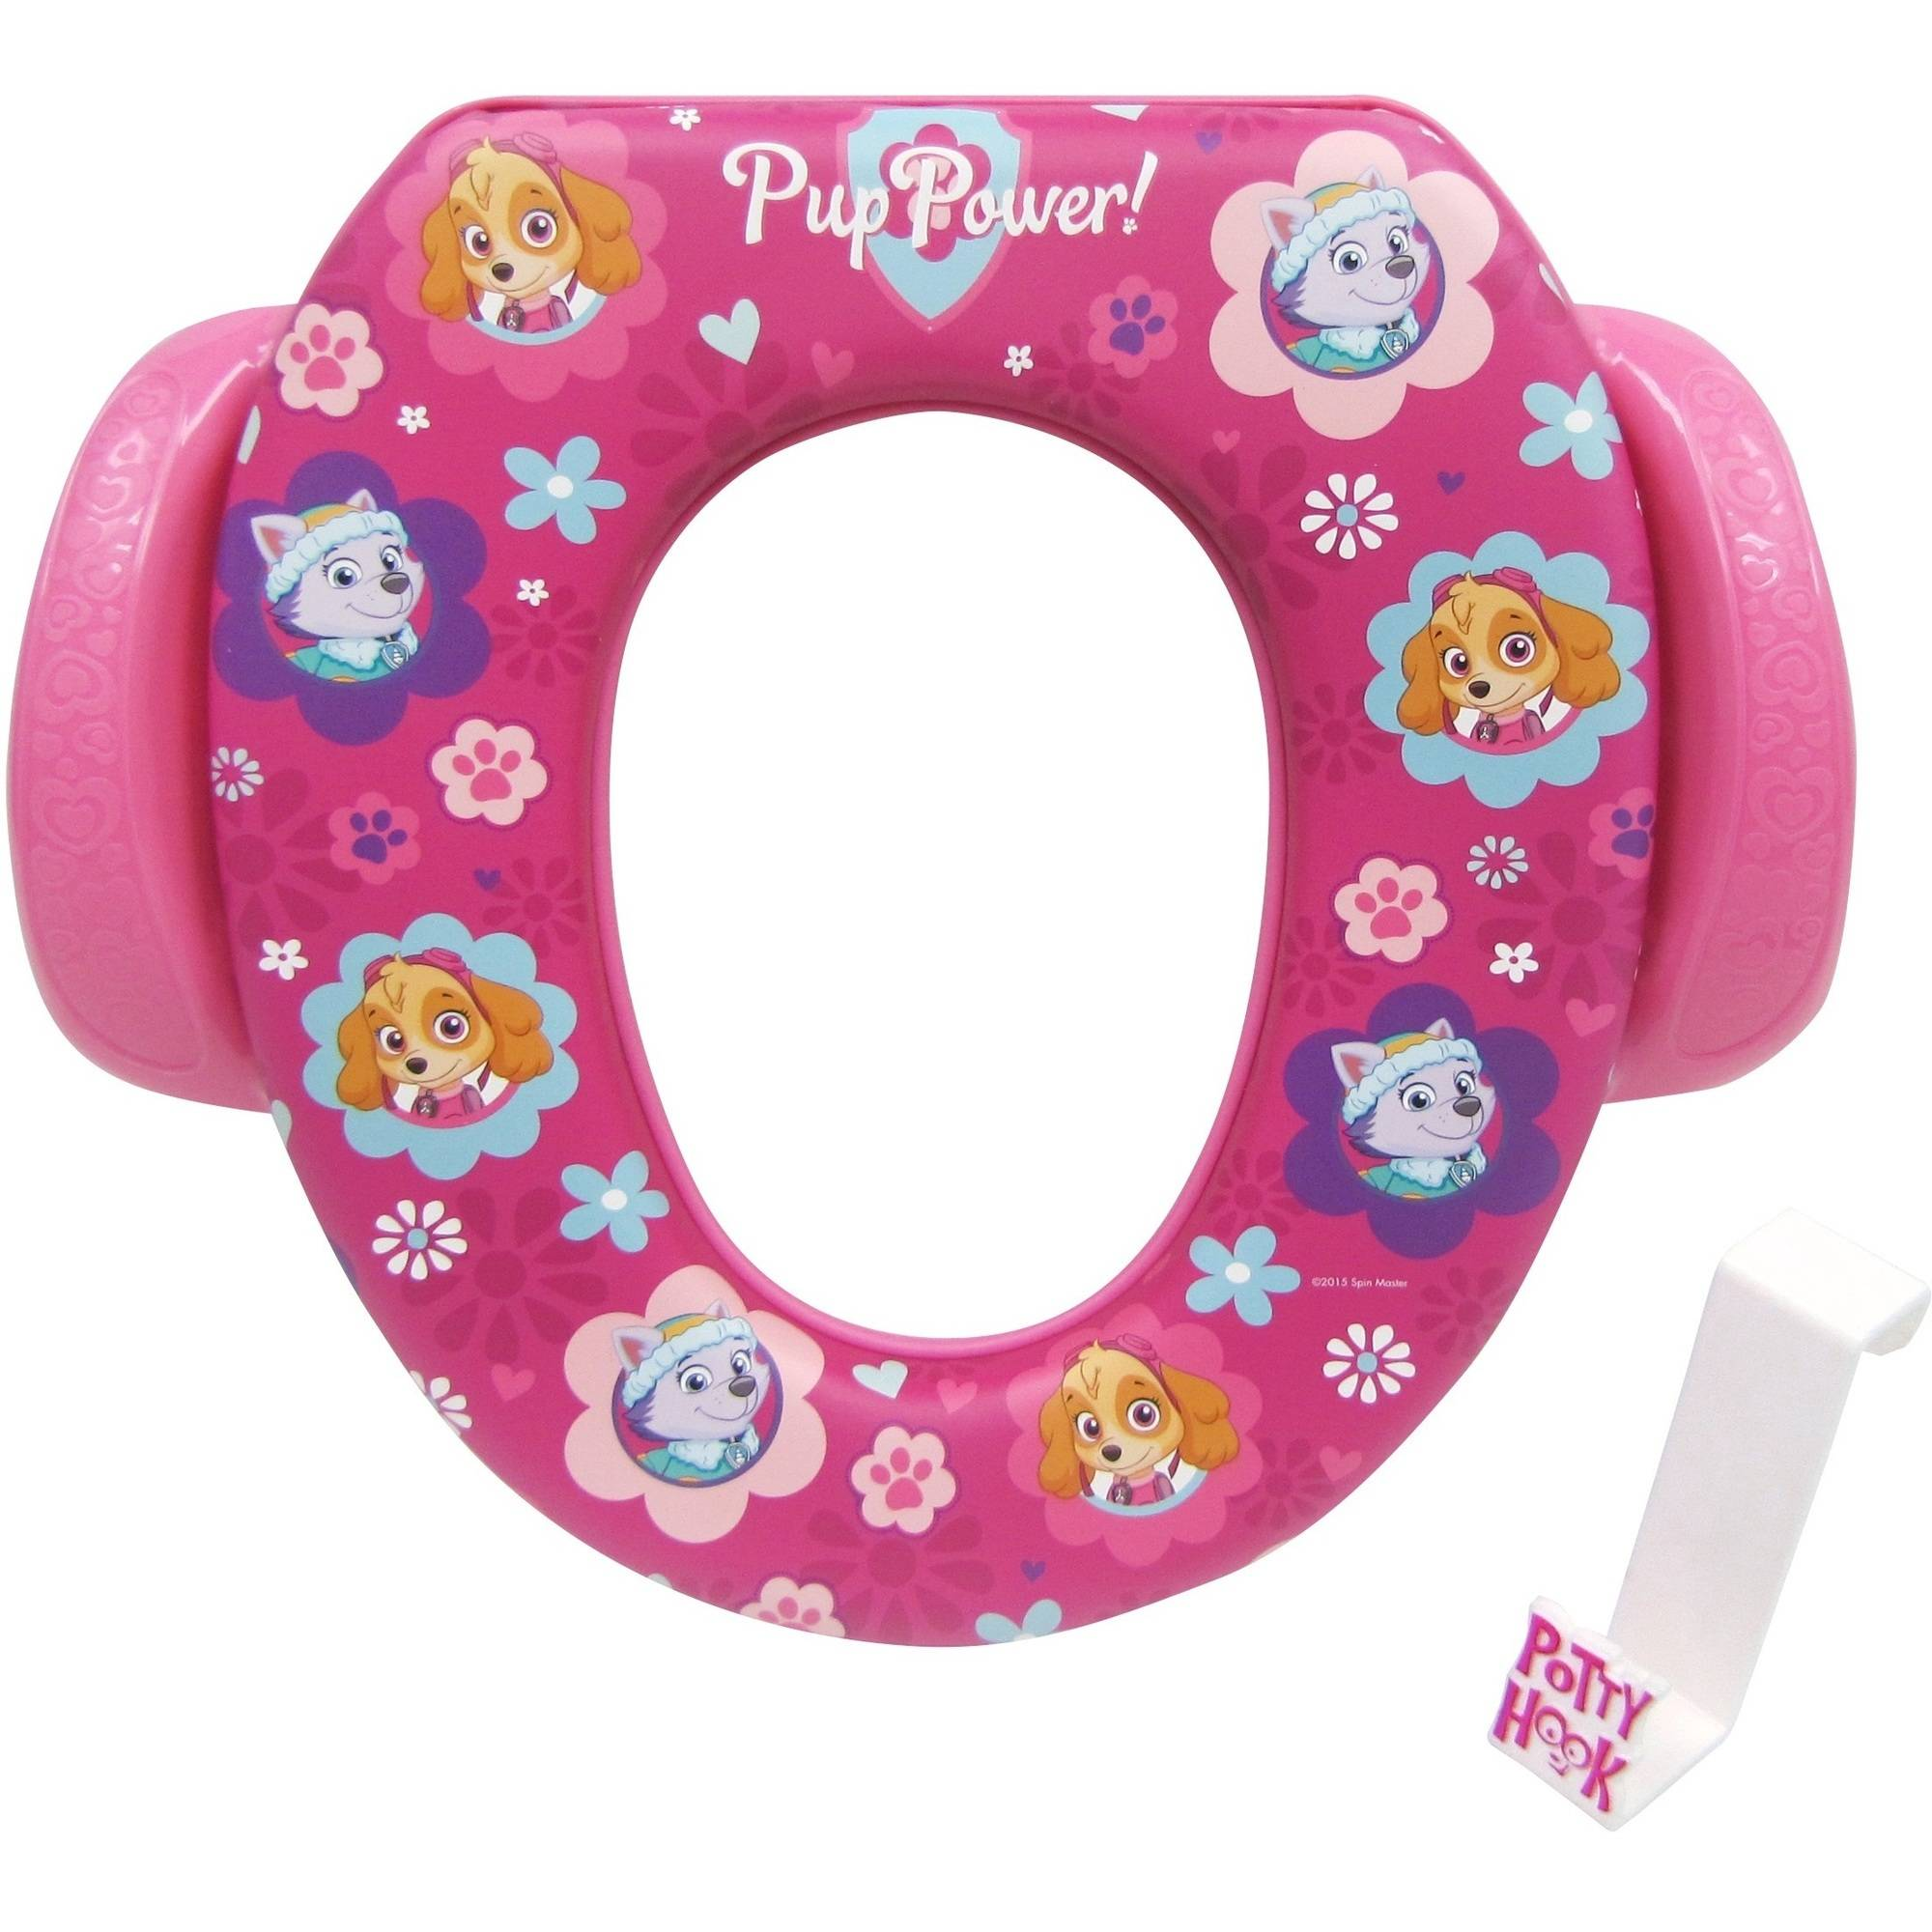 Paw Patrol Pup Power Soft Potty Seat